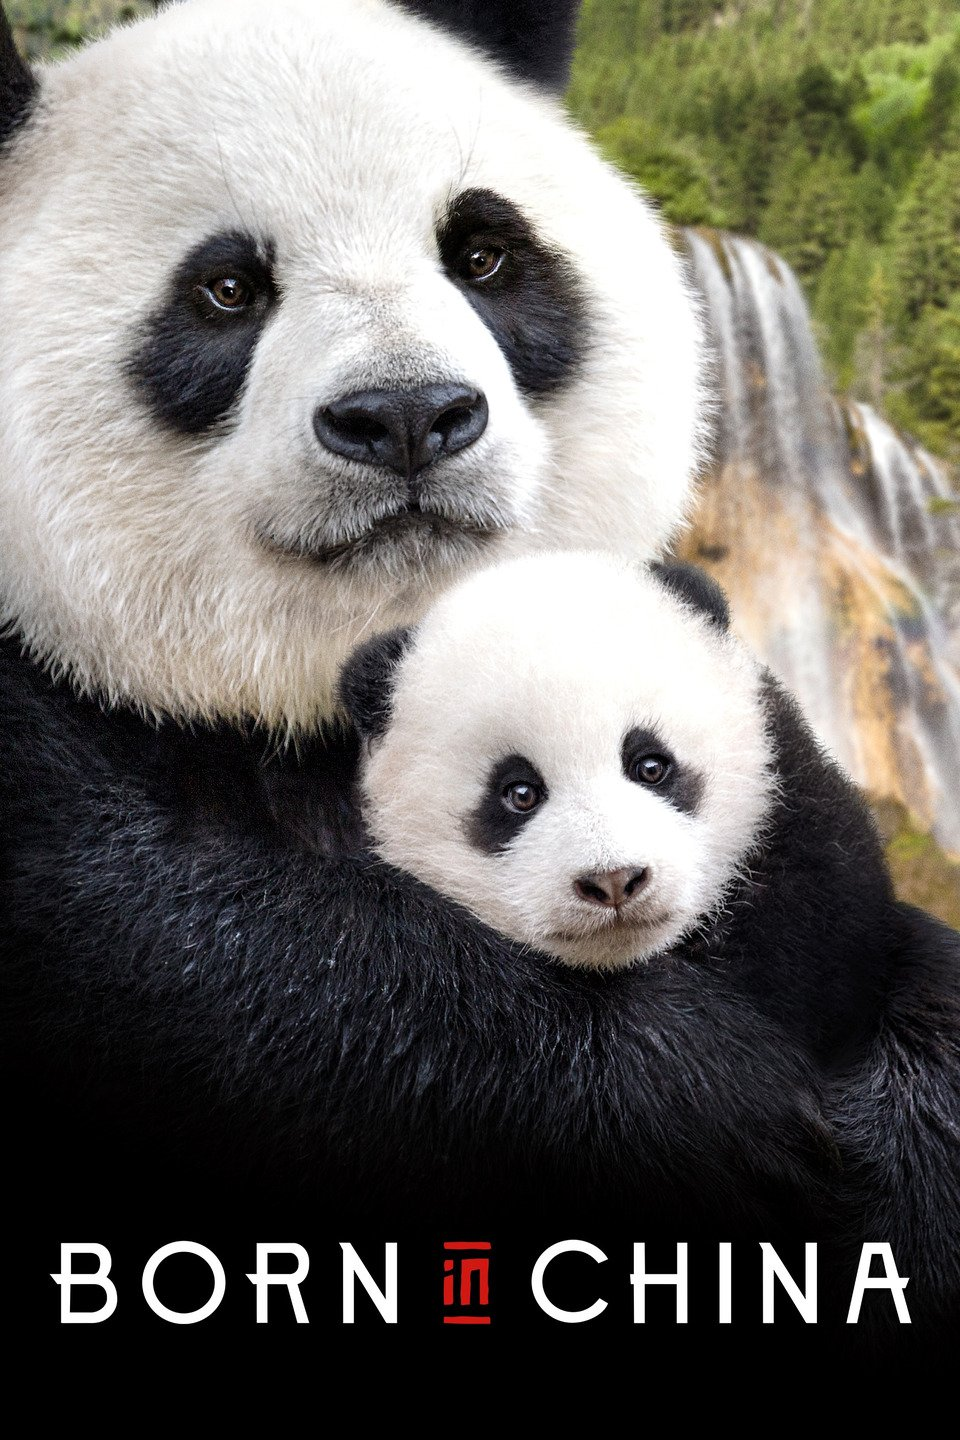 Earth Day Family Movie: Disneynature: BORN IN CHINA